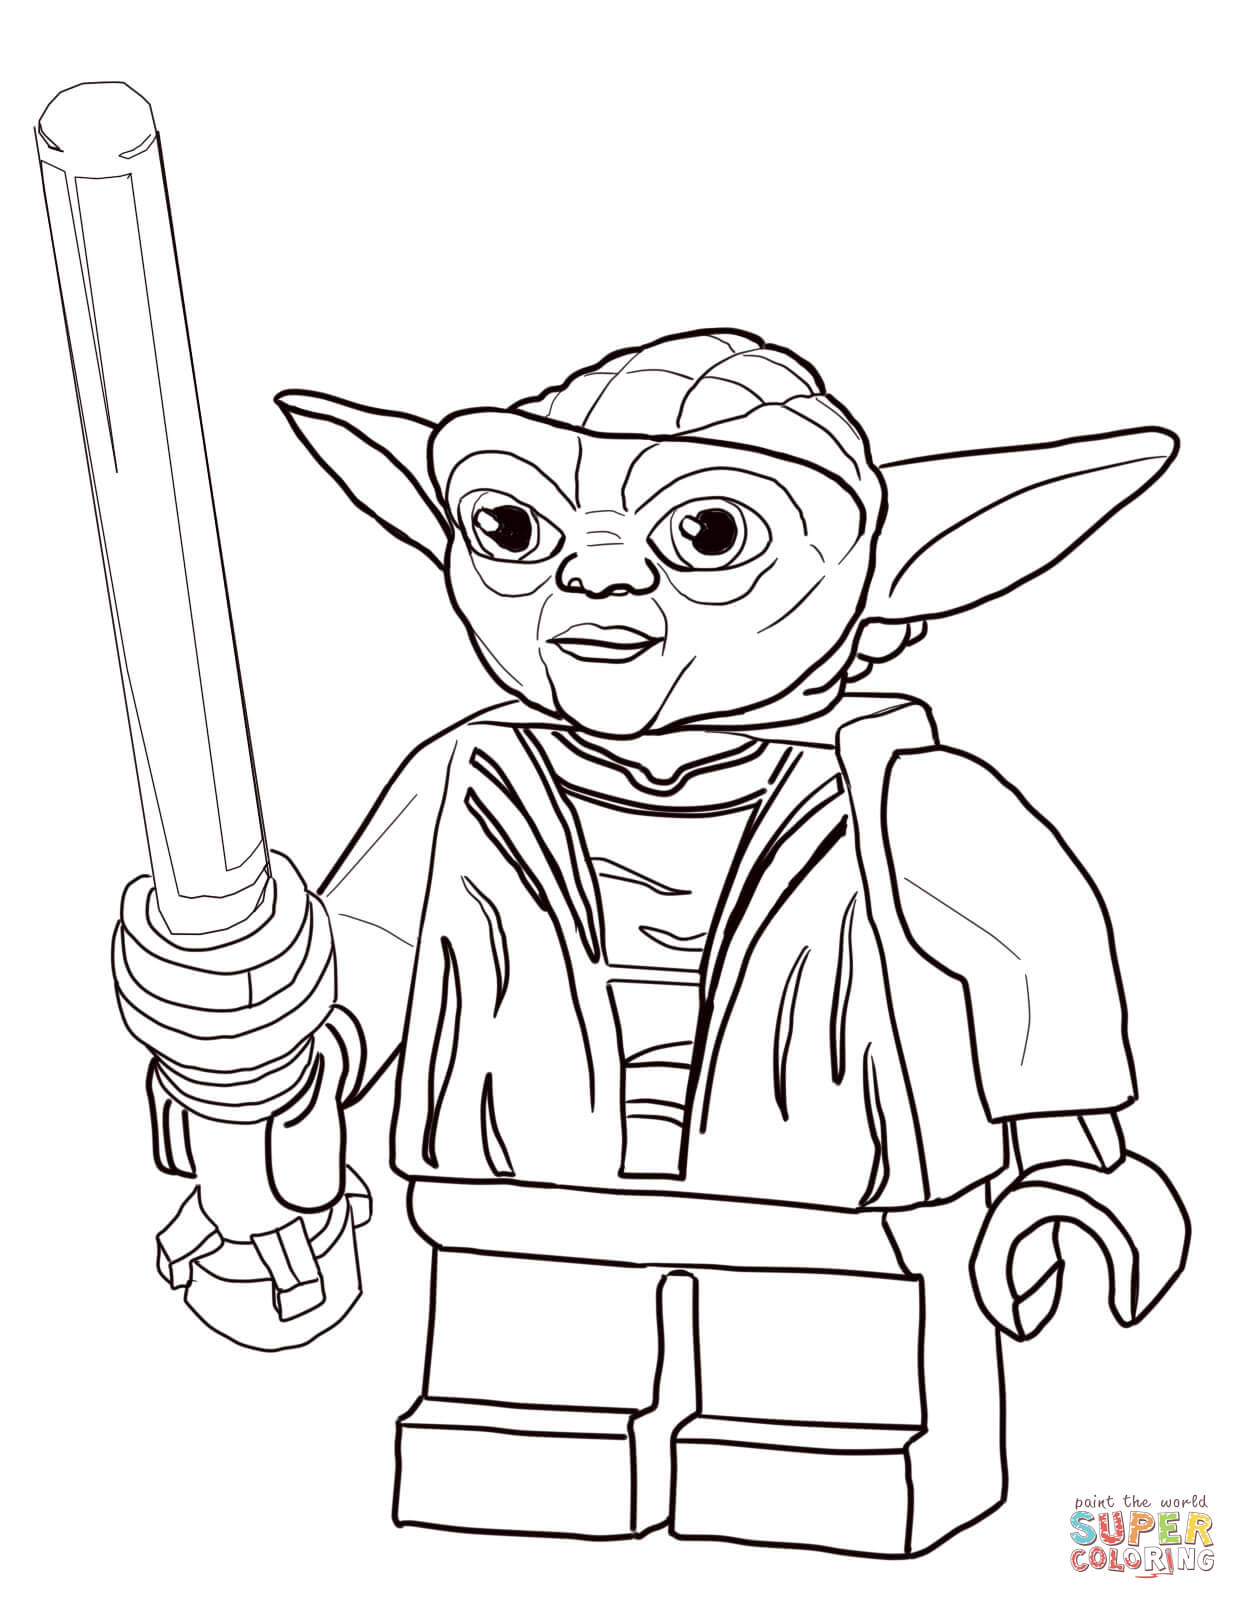 Lego Star Wars Coloring Pictures - Coloring - Coloring Home